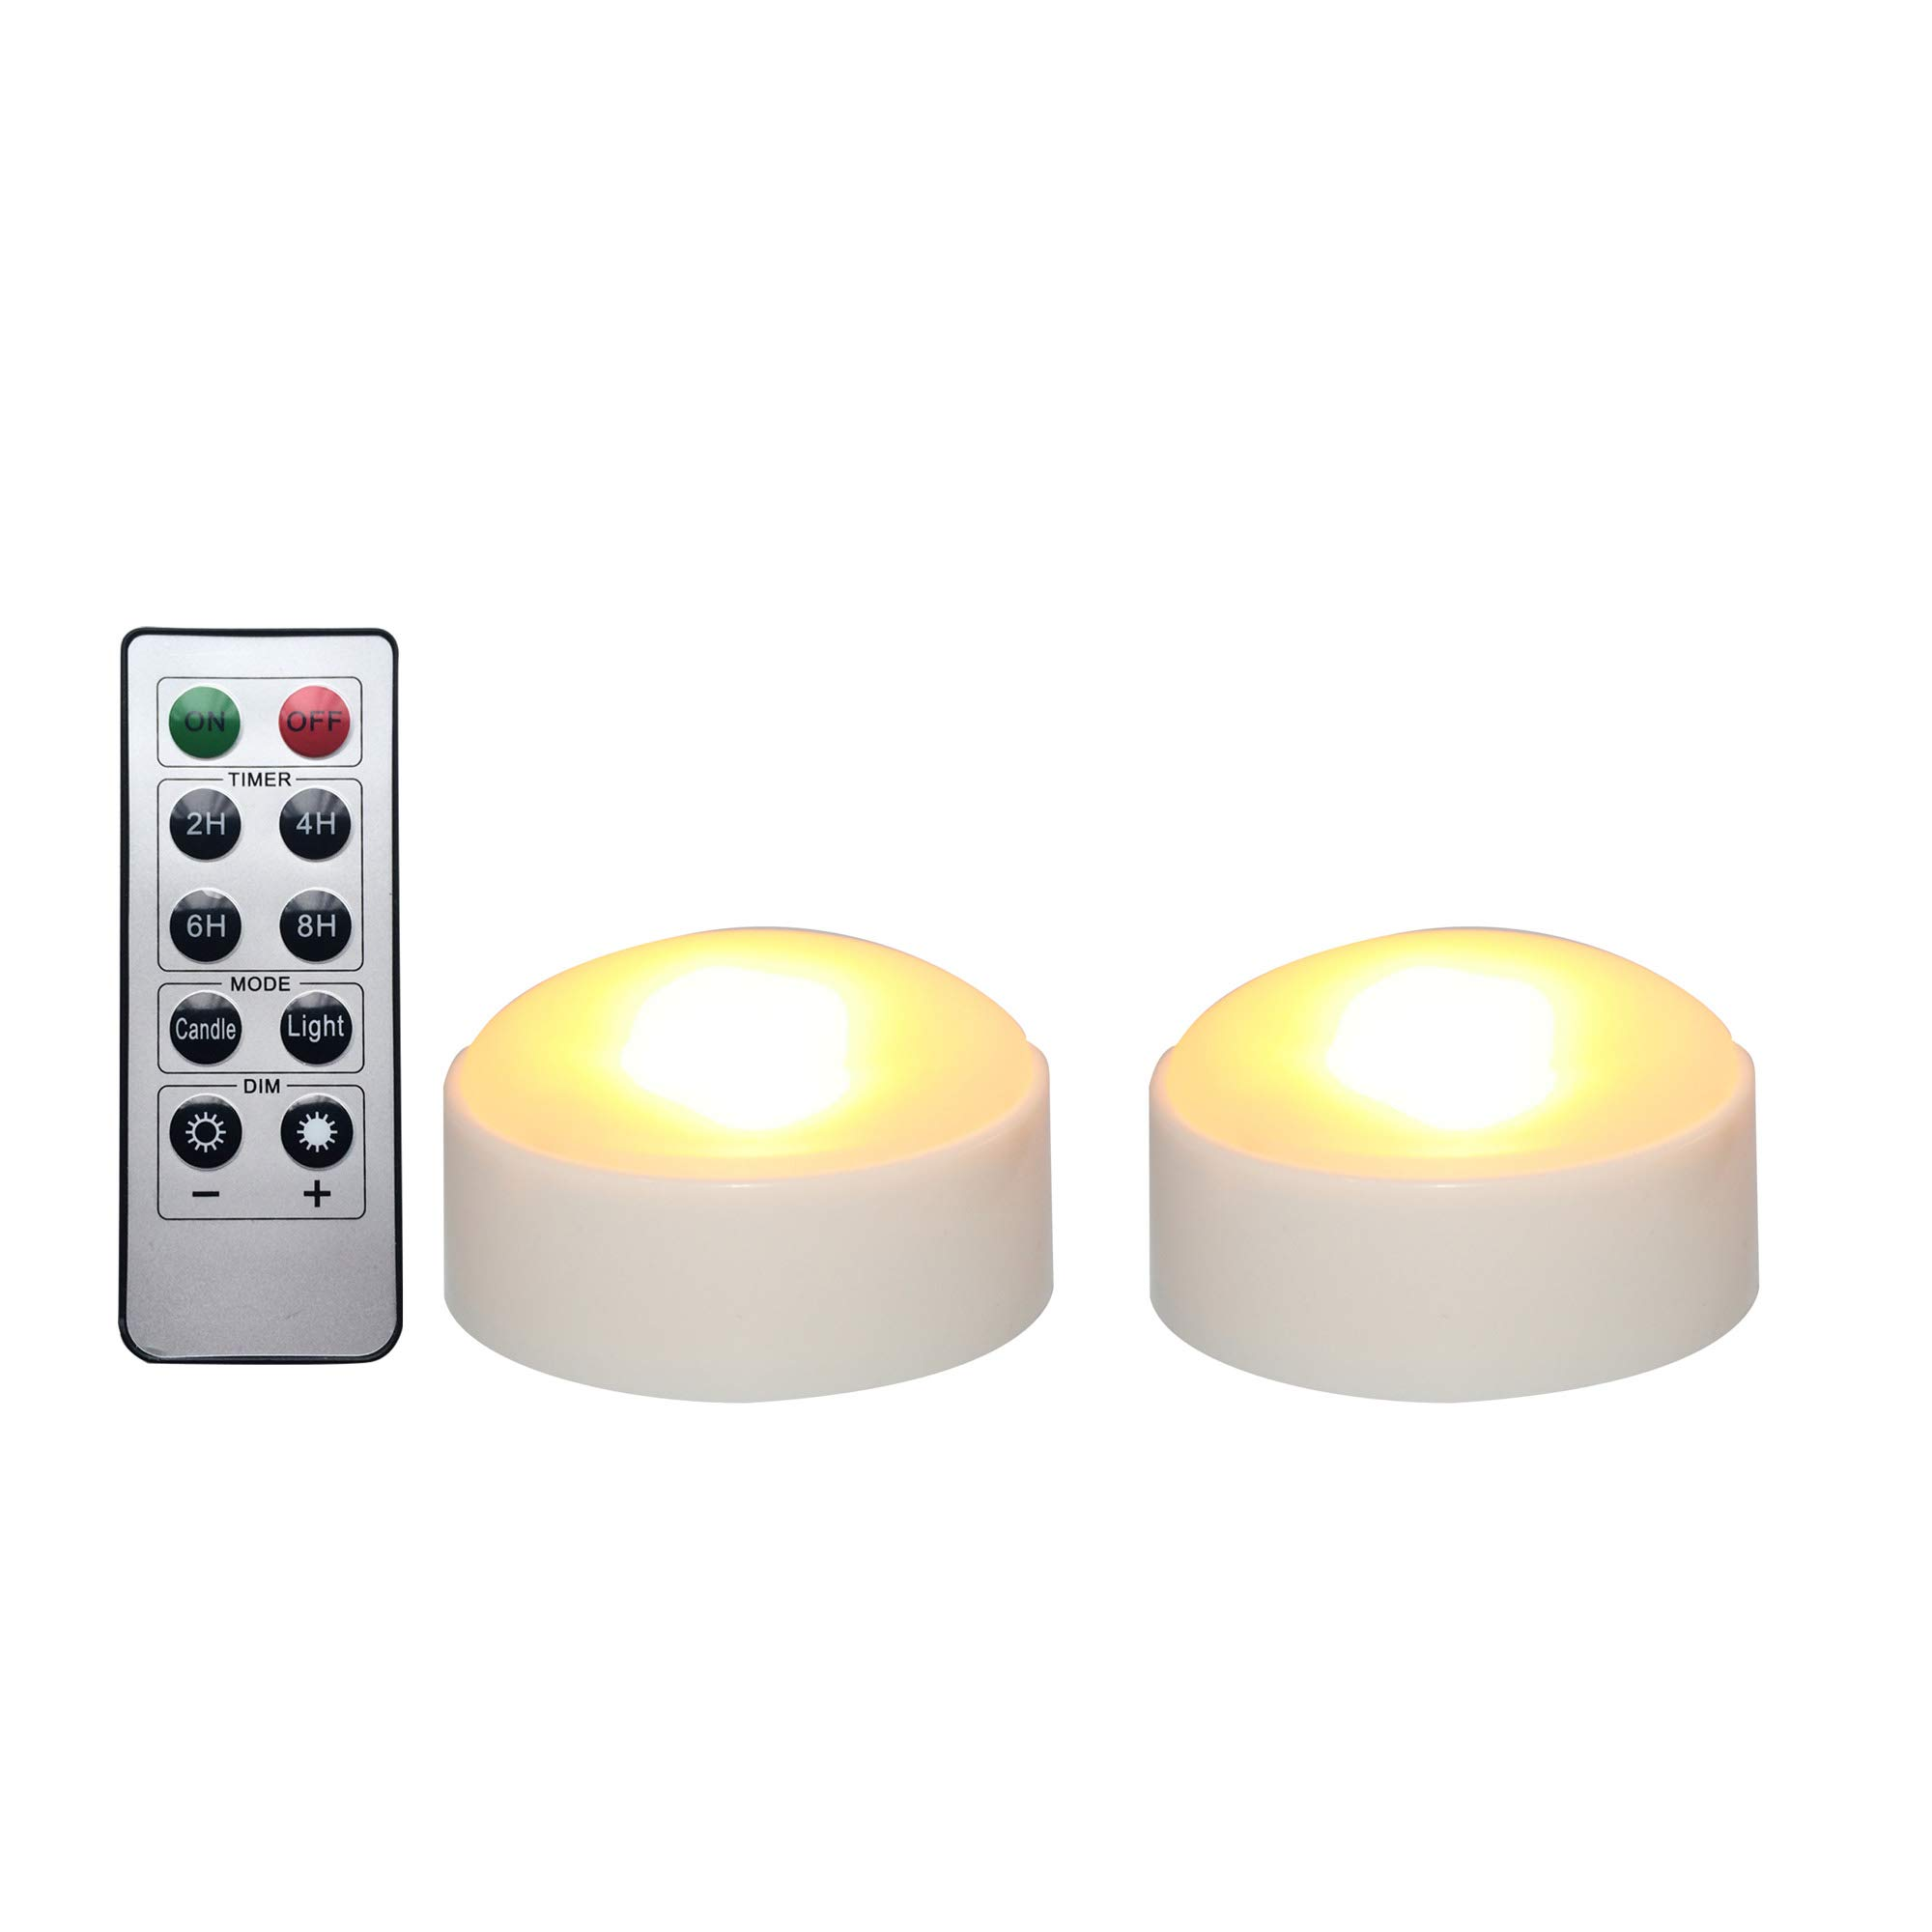 iZAN Battery Operated LED Pumpkin Lights with Remote and Timer, Bright Flickering Flameless Candles for Pumpkin Decor, Jack-O-Lantern Halloween Party Home Decorations, White Color, 2 Pack